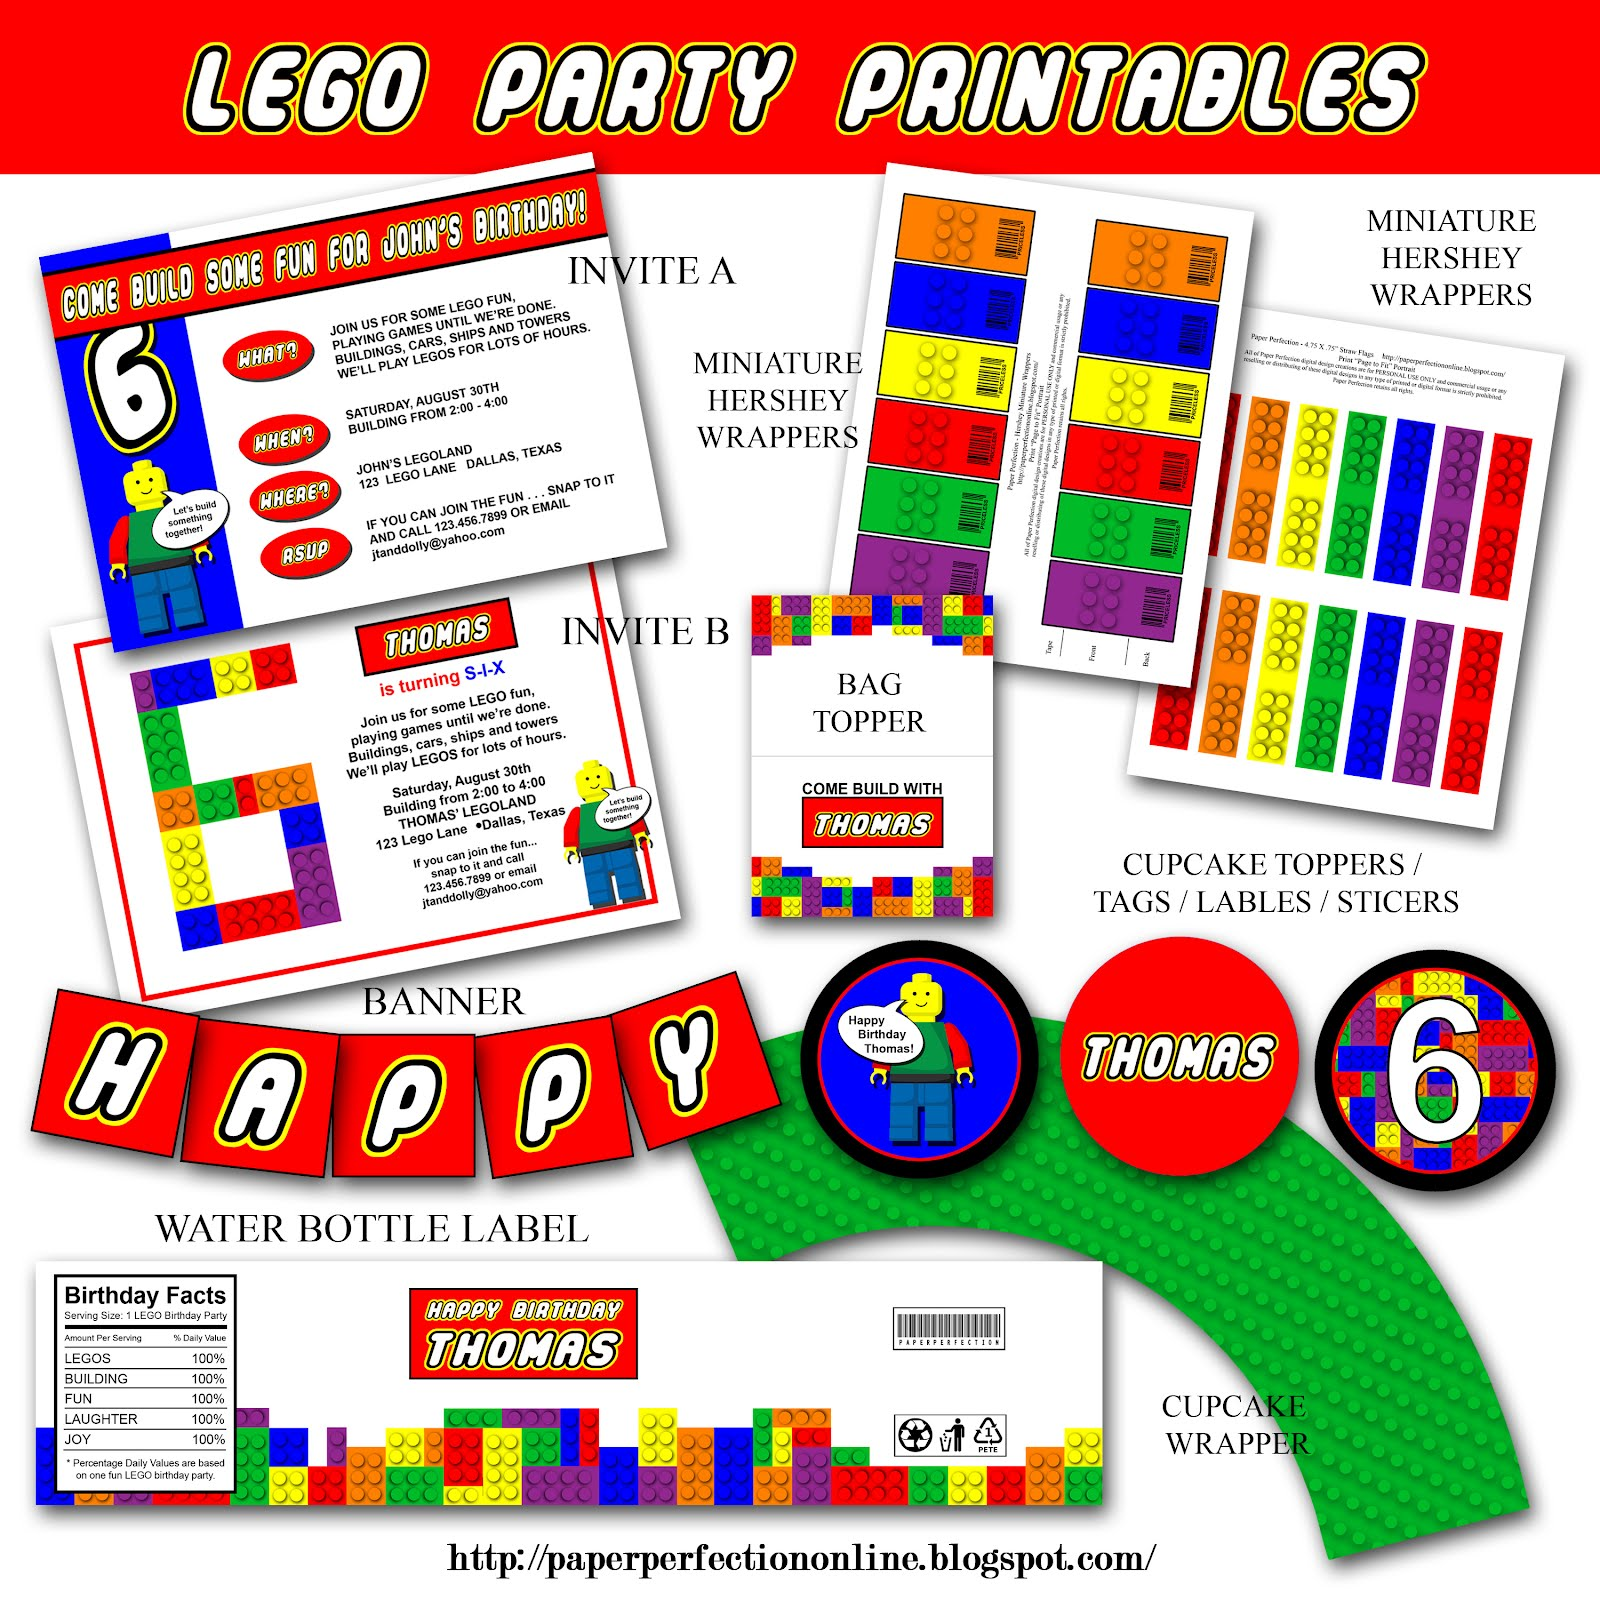 photograph relating to Lego Birthday Invitations Printable titled Paper Perfection: LEGO Occasion INVITATION AND Celebration PRINTABLES